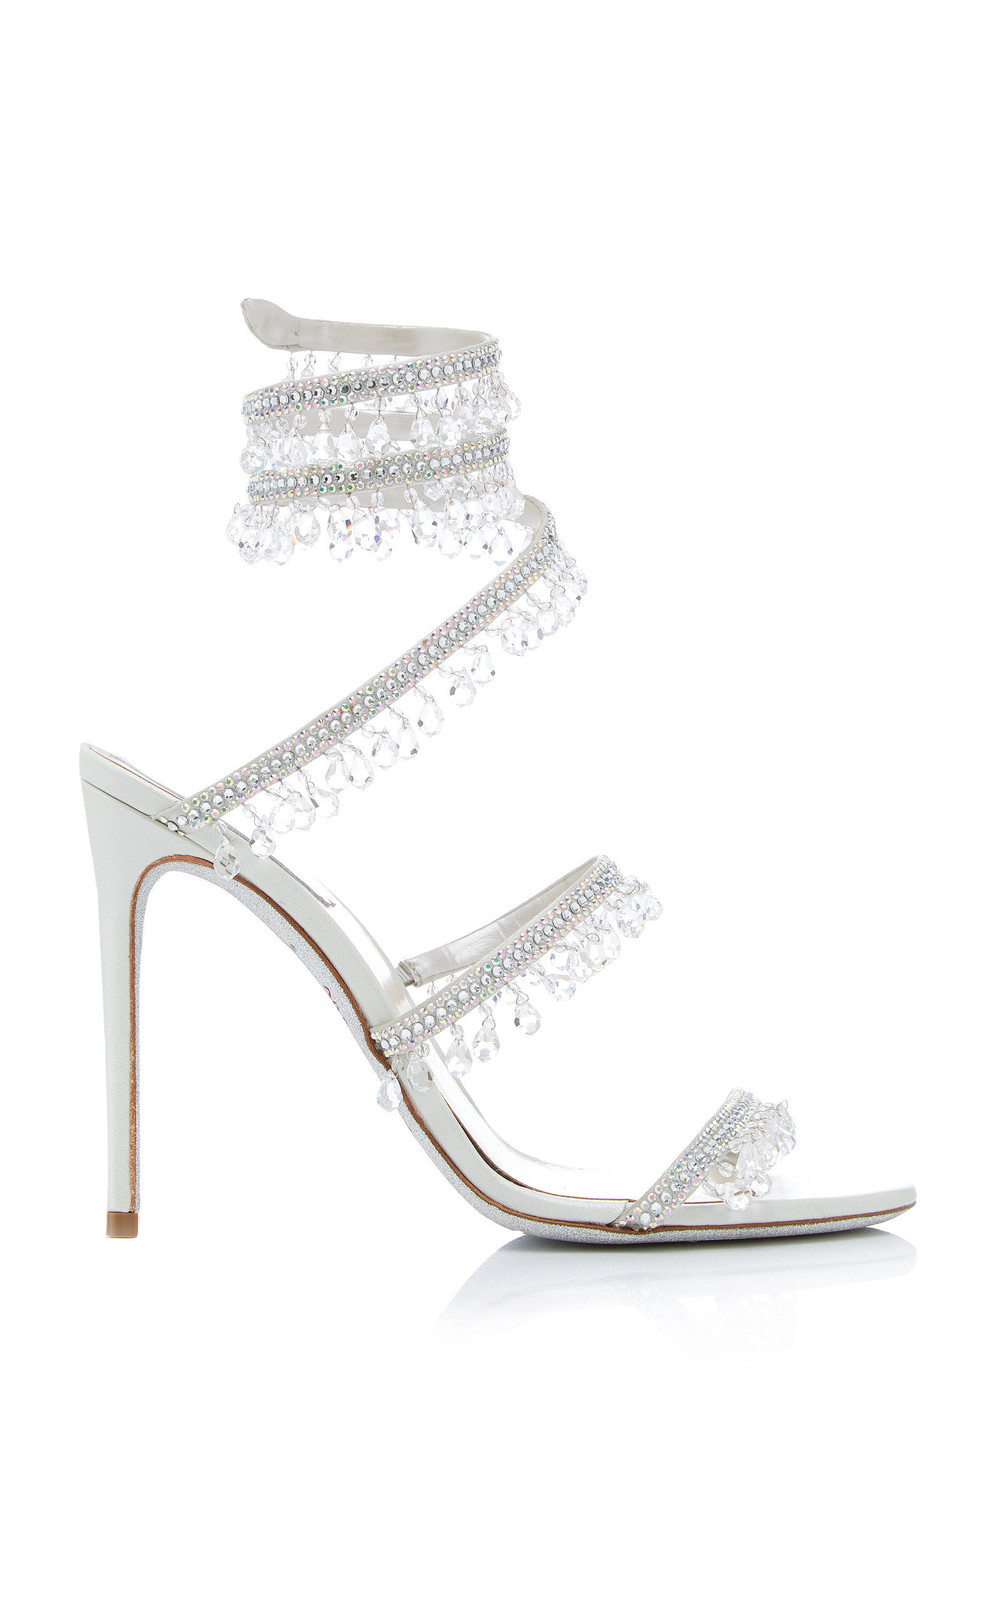 Rene Caovilla Exclusive Crystal-Embellished Sandal in white